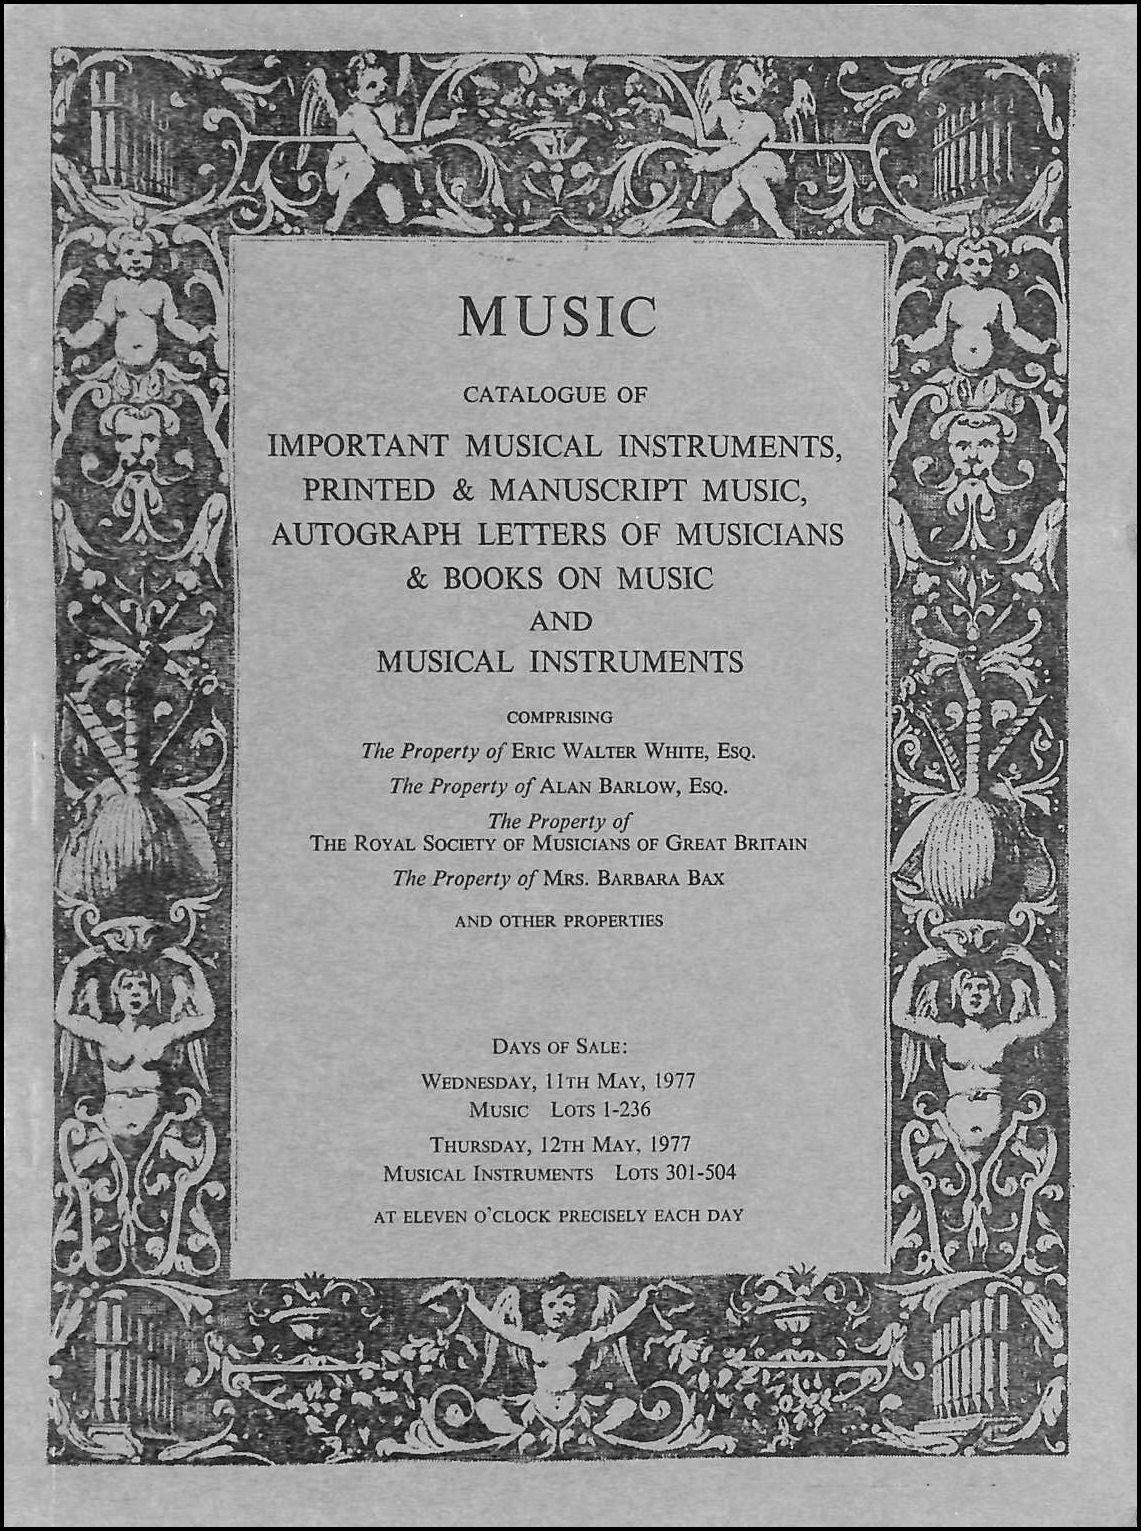 Music Catalogue of Important Musical Instruments 11th, 12th May 1977, Sotheby's